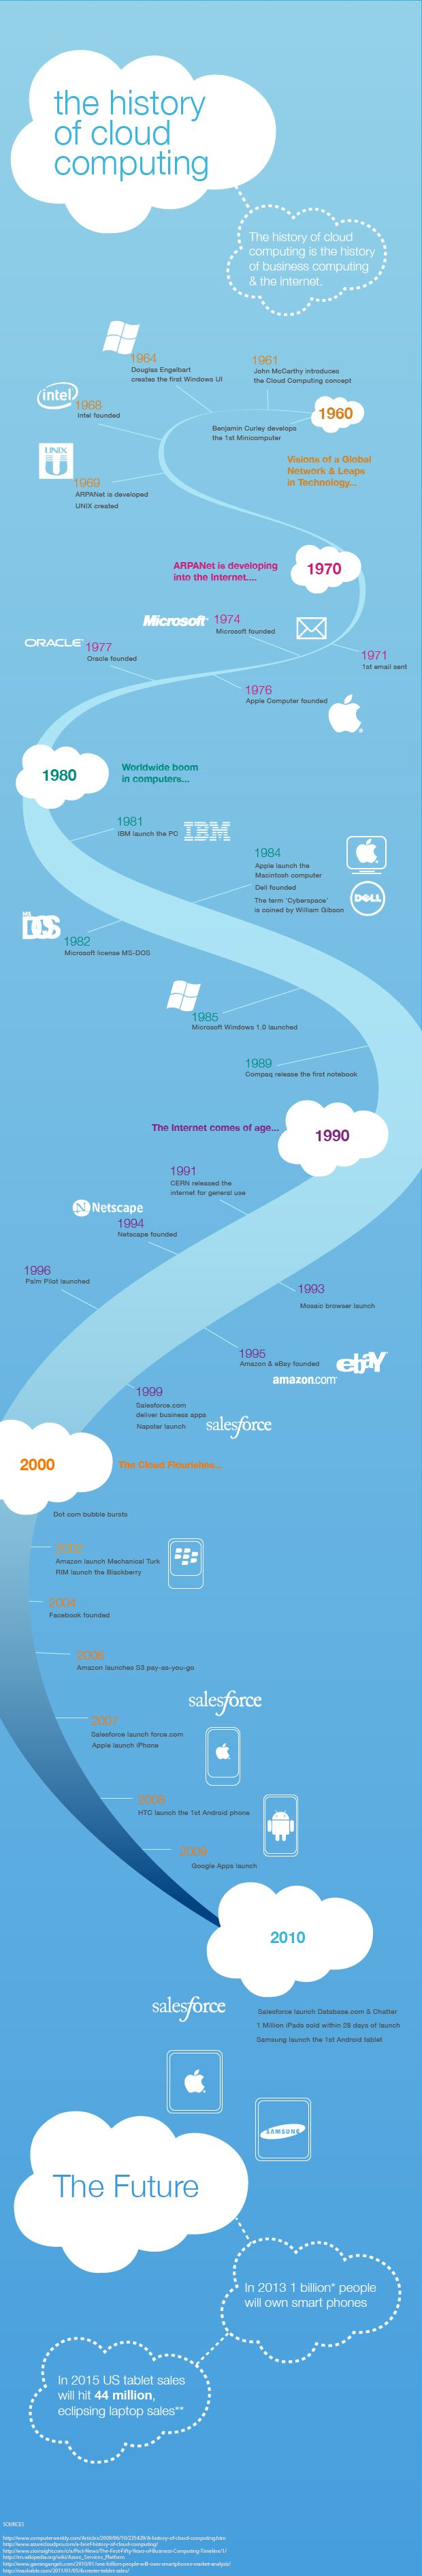 A Complete History of Cloud Computing. http://www.salesforce.com/uk/socialsuccess/cloud-computing/the-complete-history-of-cloud-computing.jsp